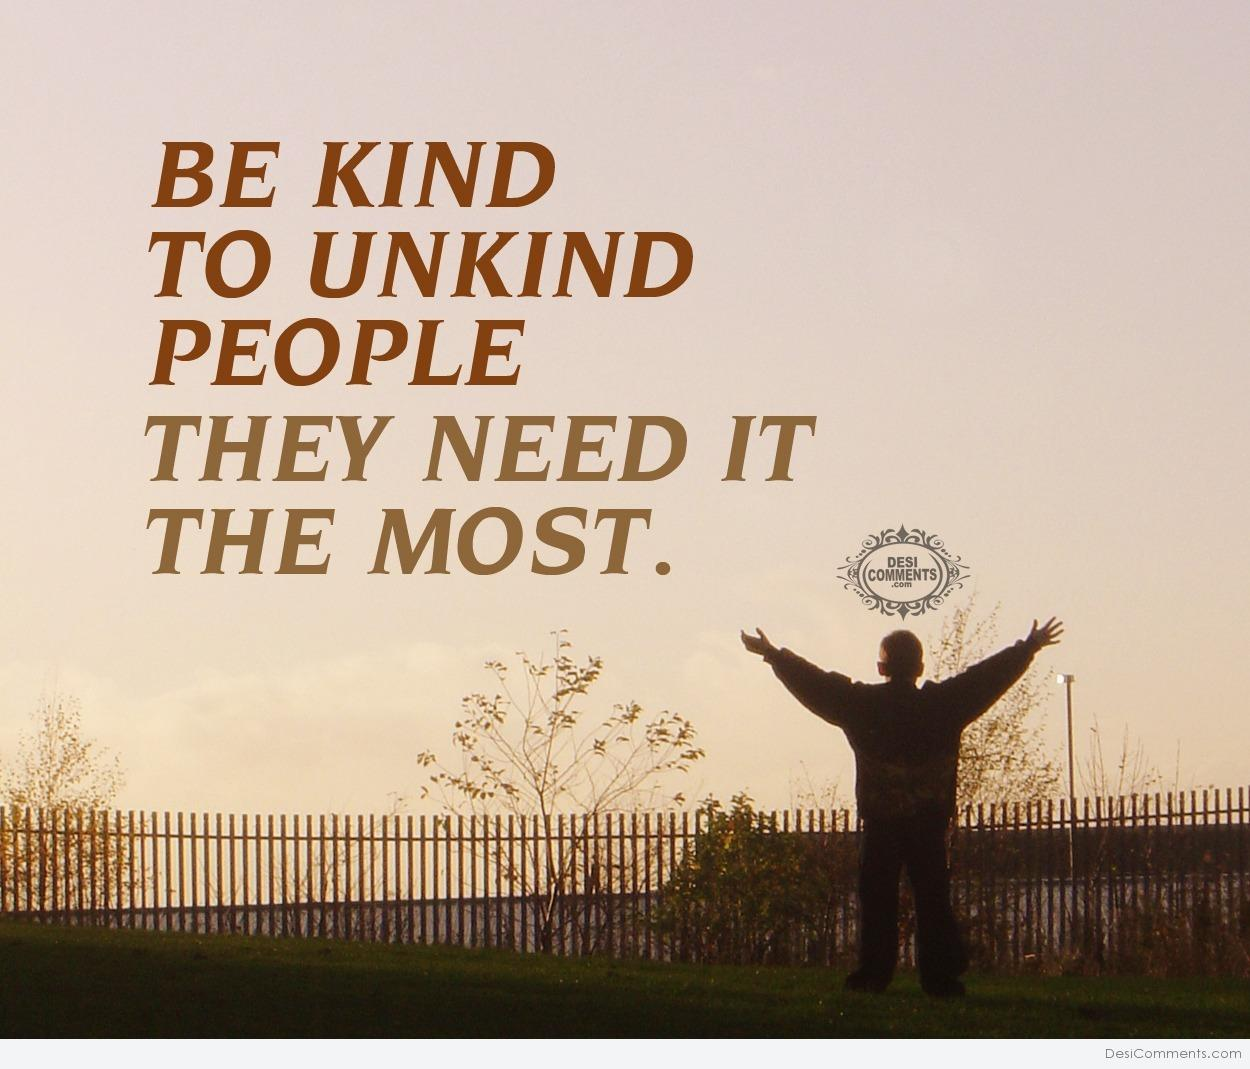 Be kind to unkind people - DesiComments.com